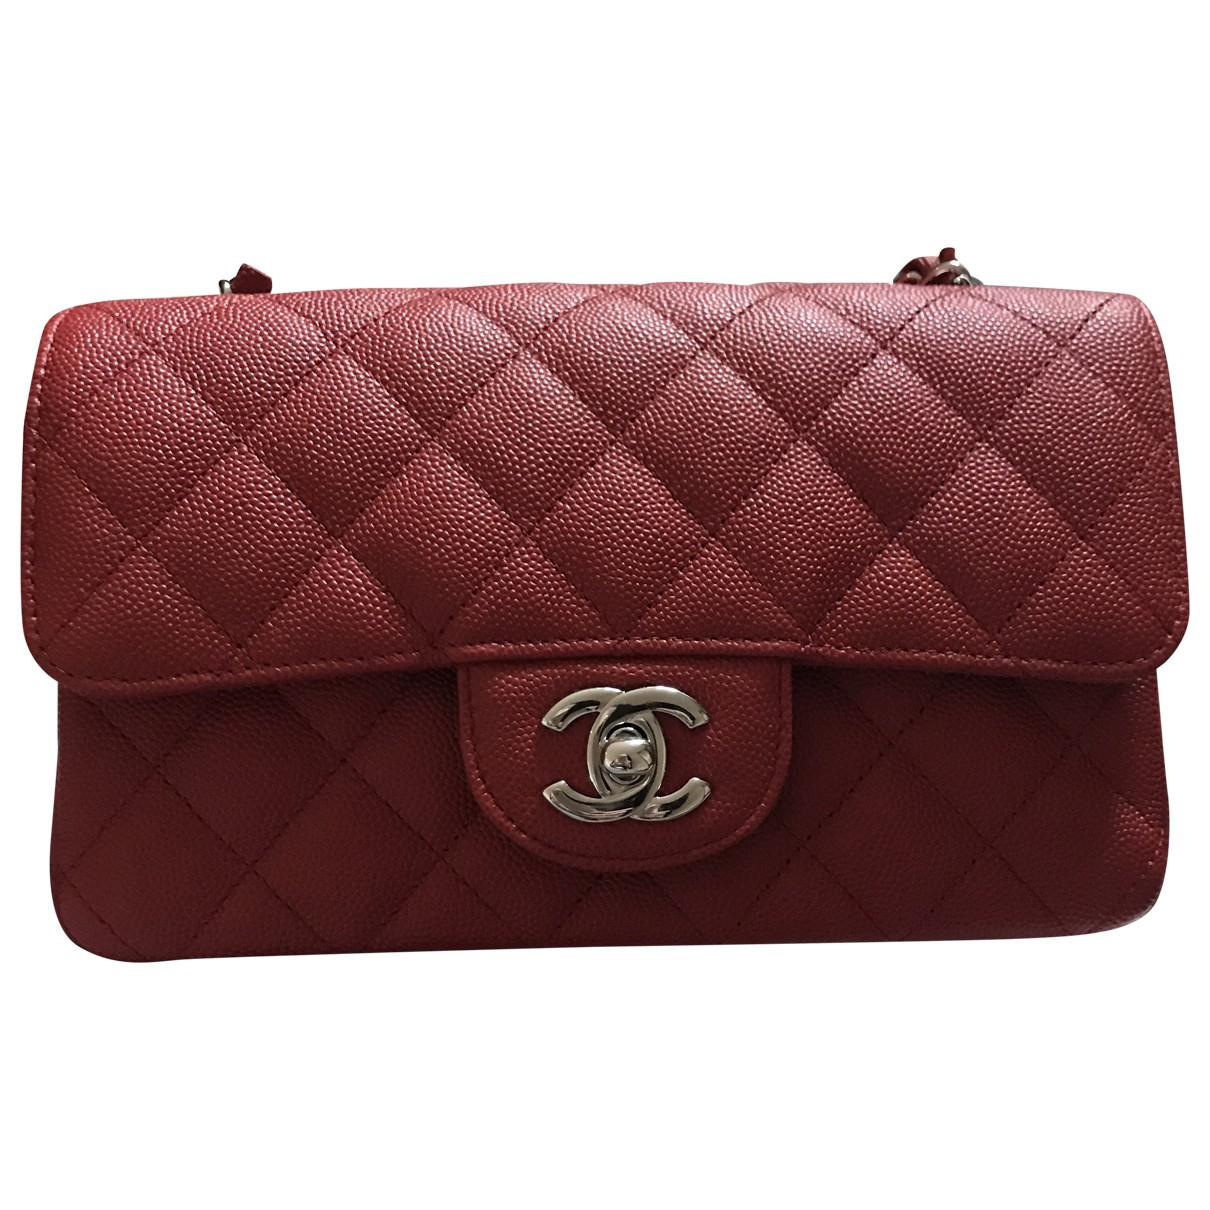 Chanel Pre-owned - Timeless leather mini bag HfFwPJ